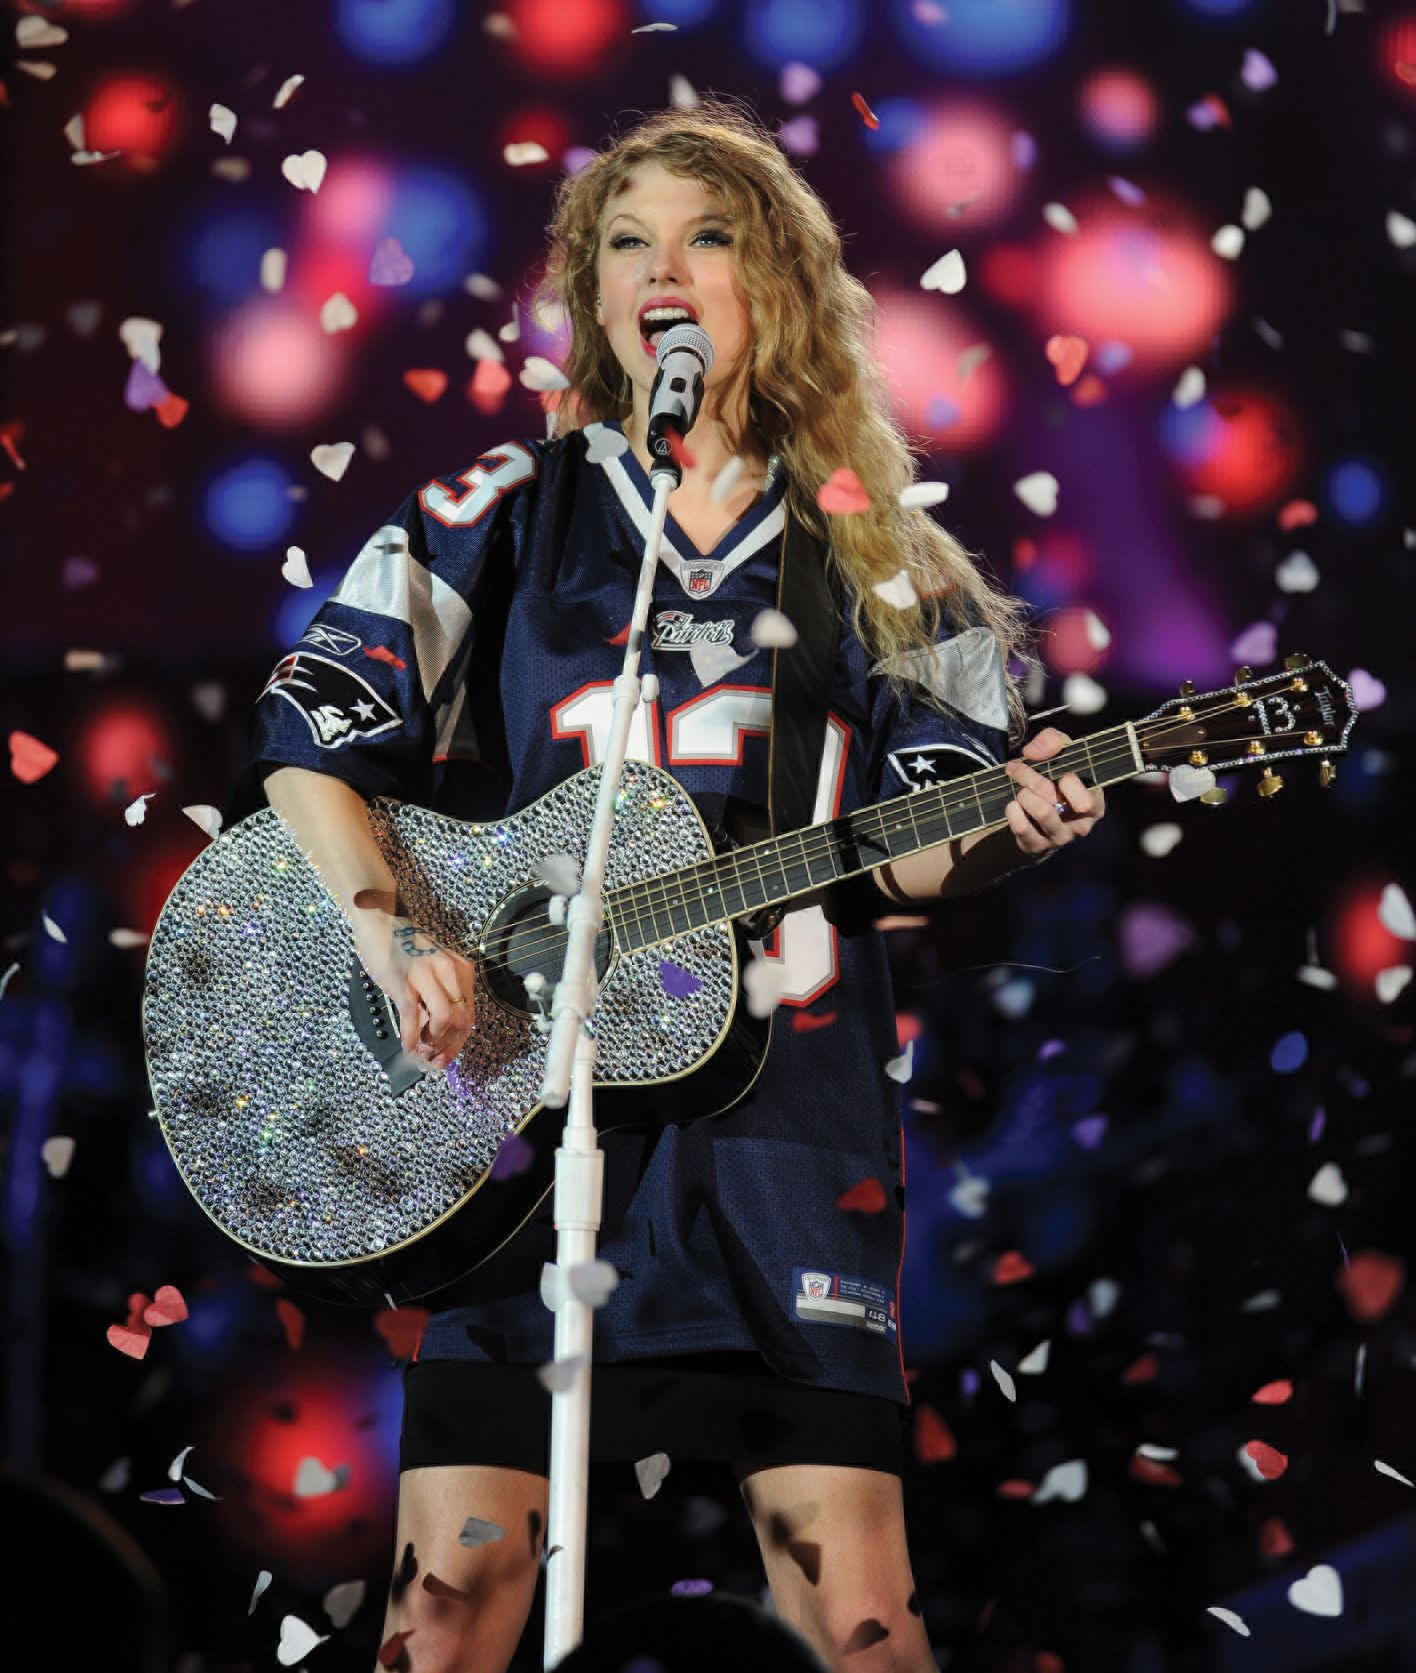 Taylor Swift In A Patriots 13 Jersey What This Is Possible Tue Best Taylor Swift Picture Taylor Swift Fearless Long Live Taylor Swift Taylor Swift